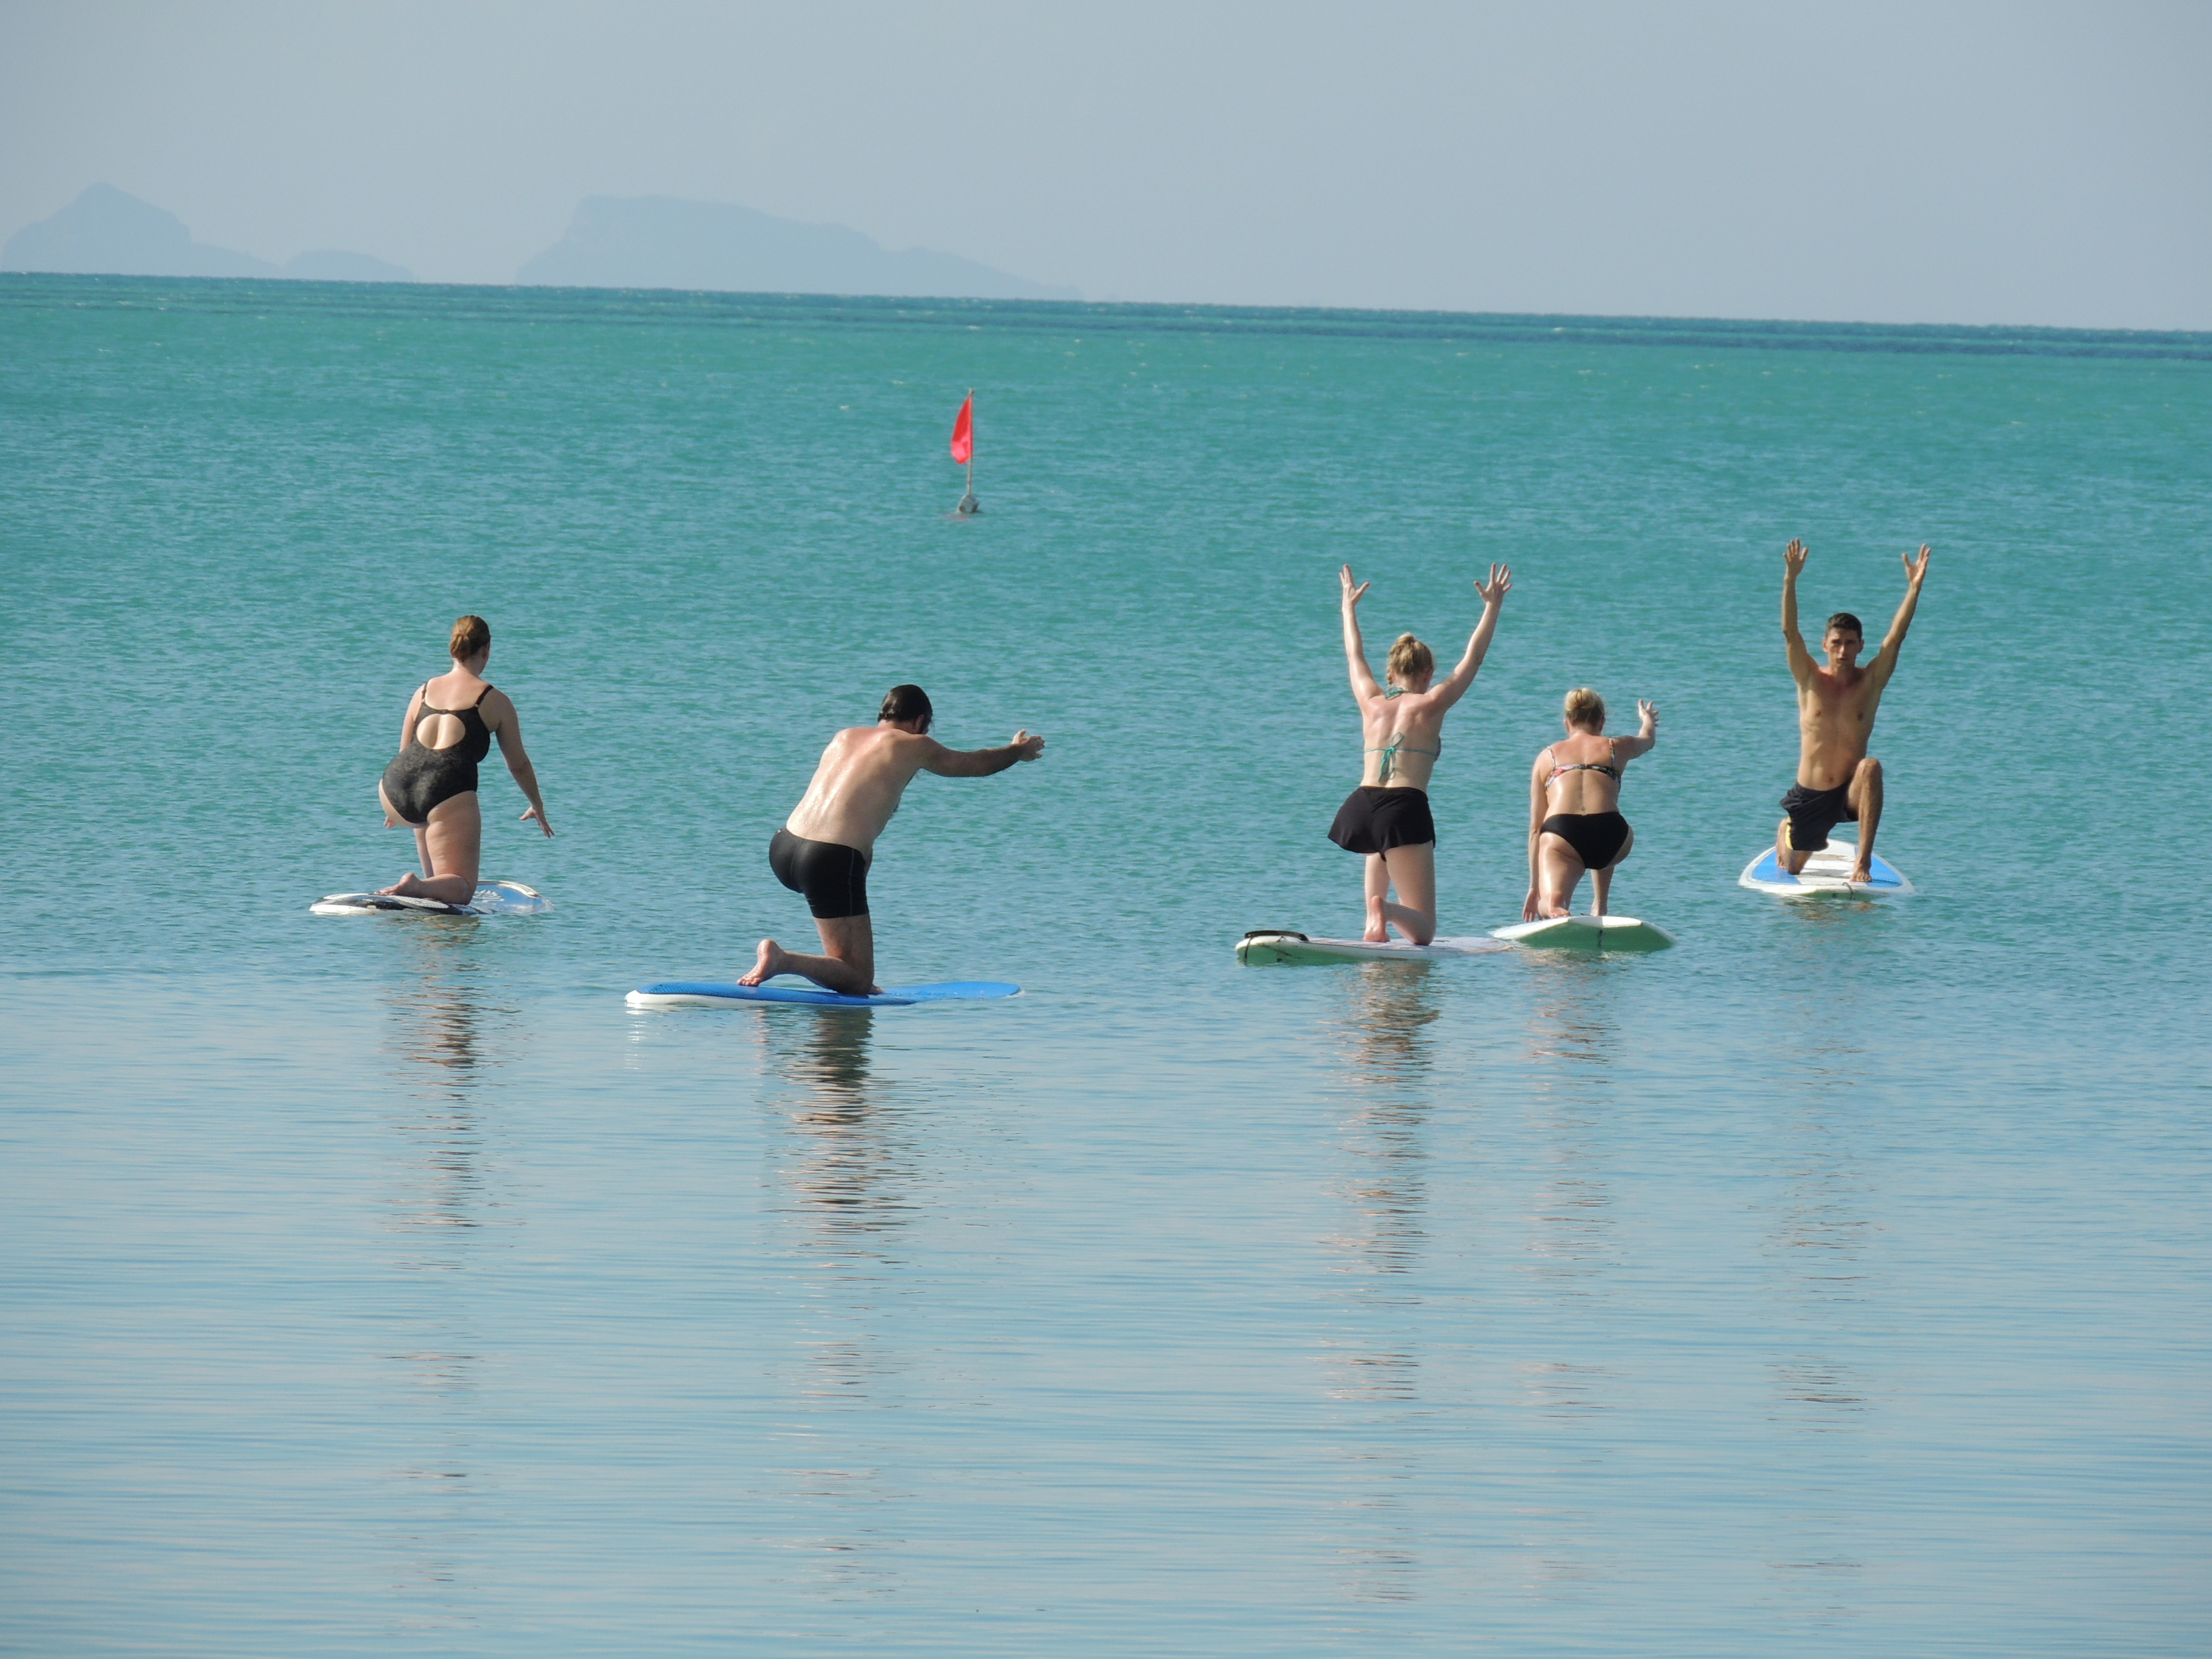 Samui-paddleboard is looking for a teacher of sup yoga